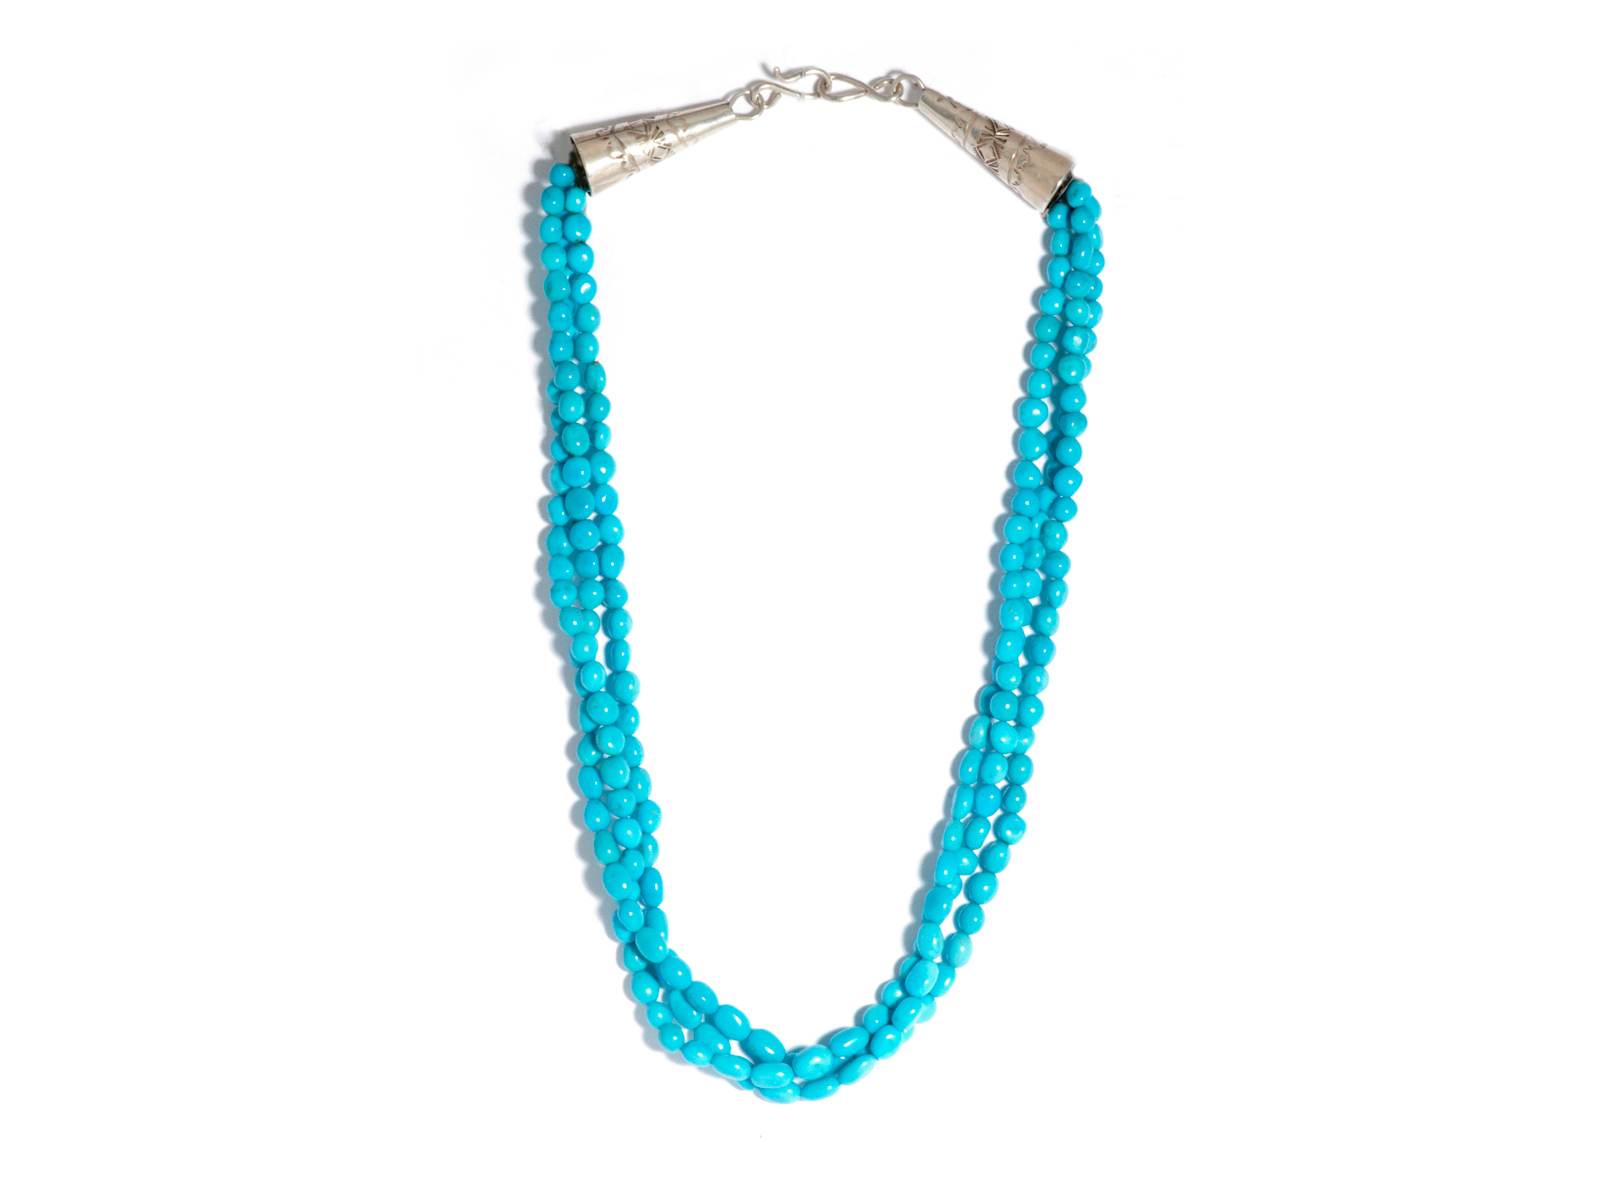 3 Strand Natural Sleeping Beauty Turquoise Bead Necklace